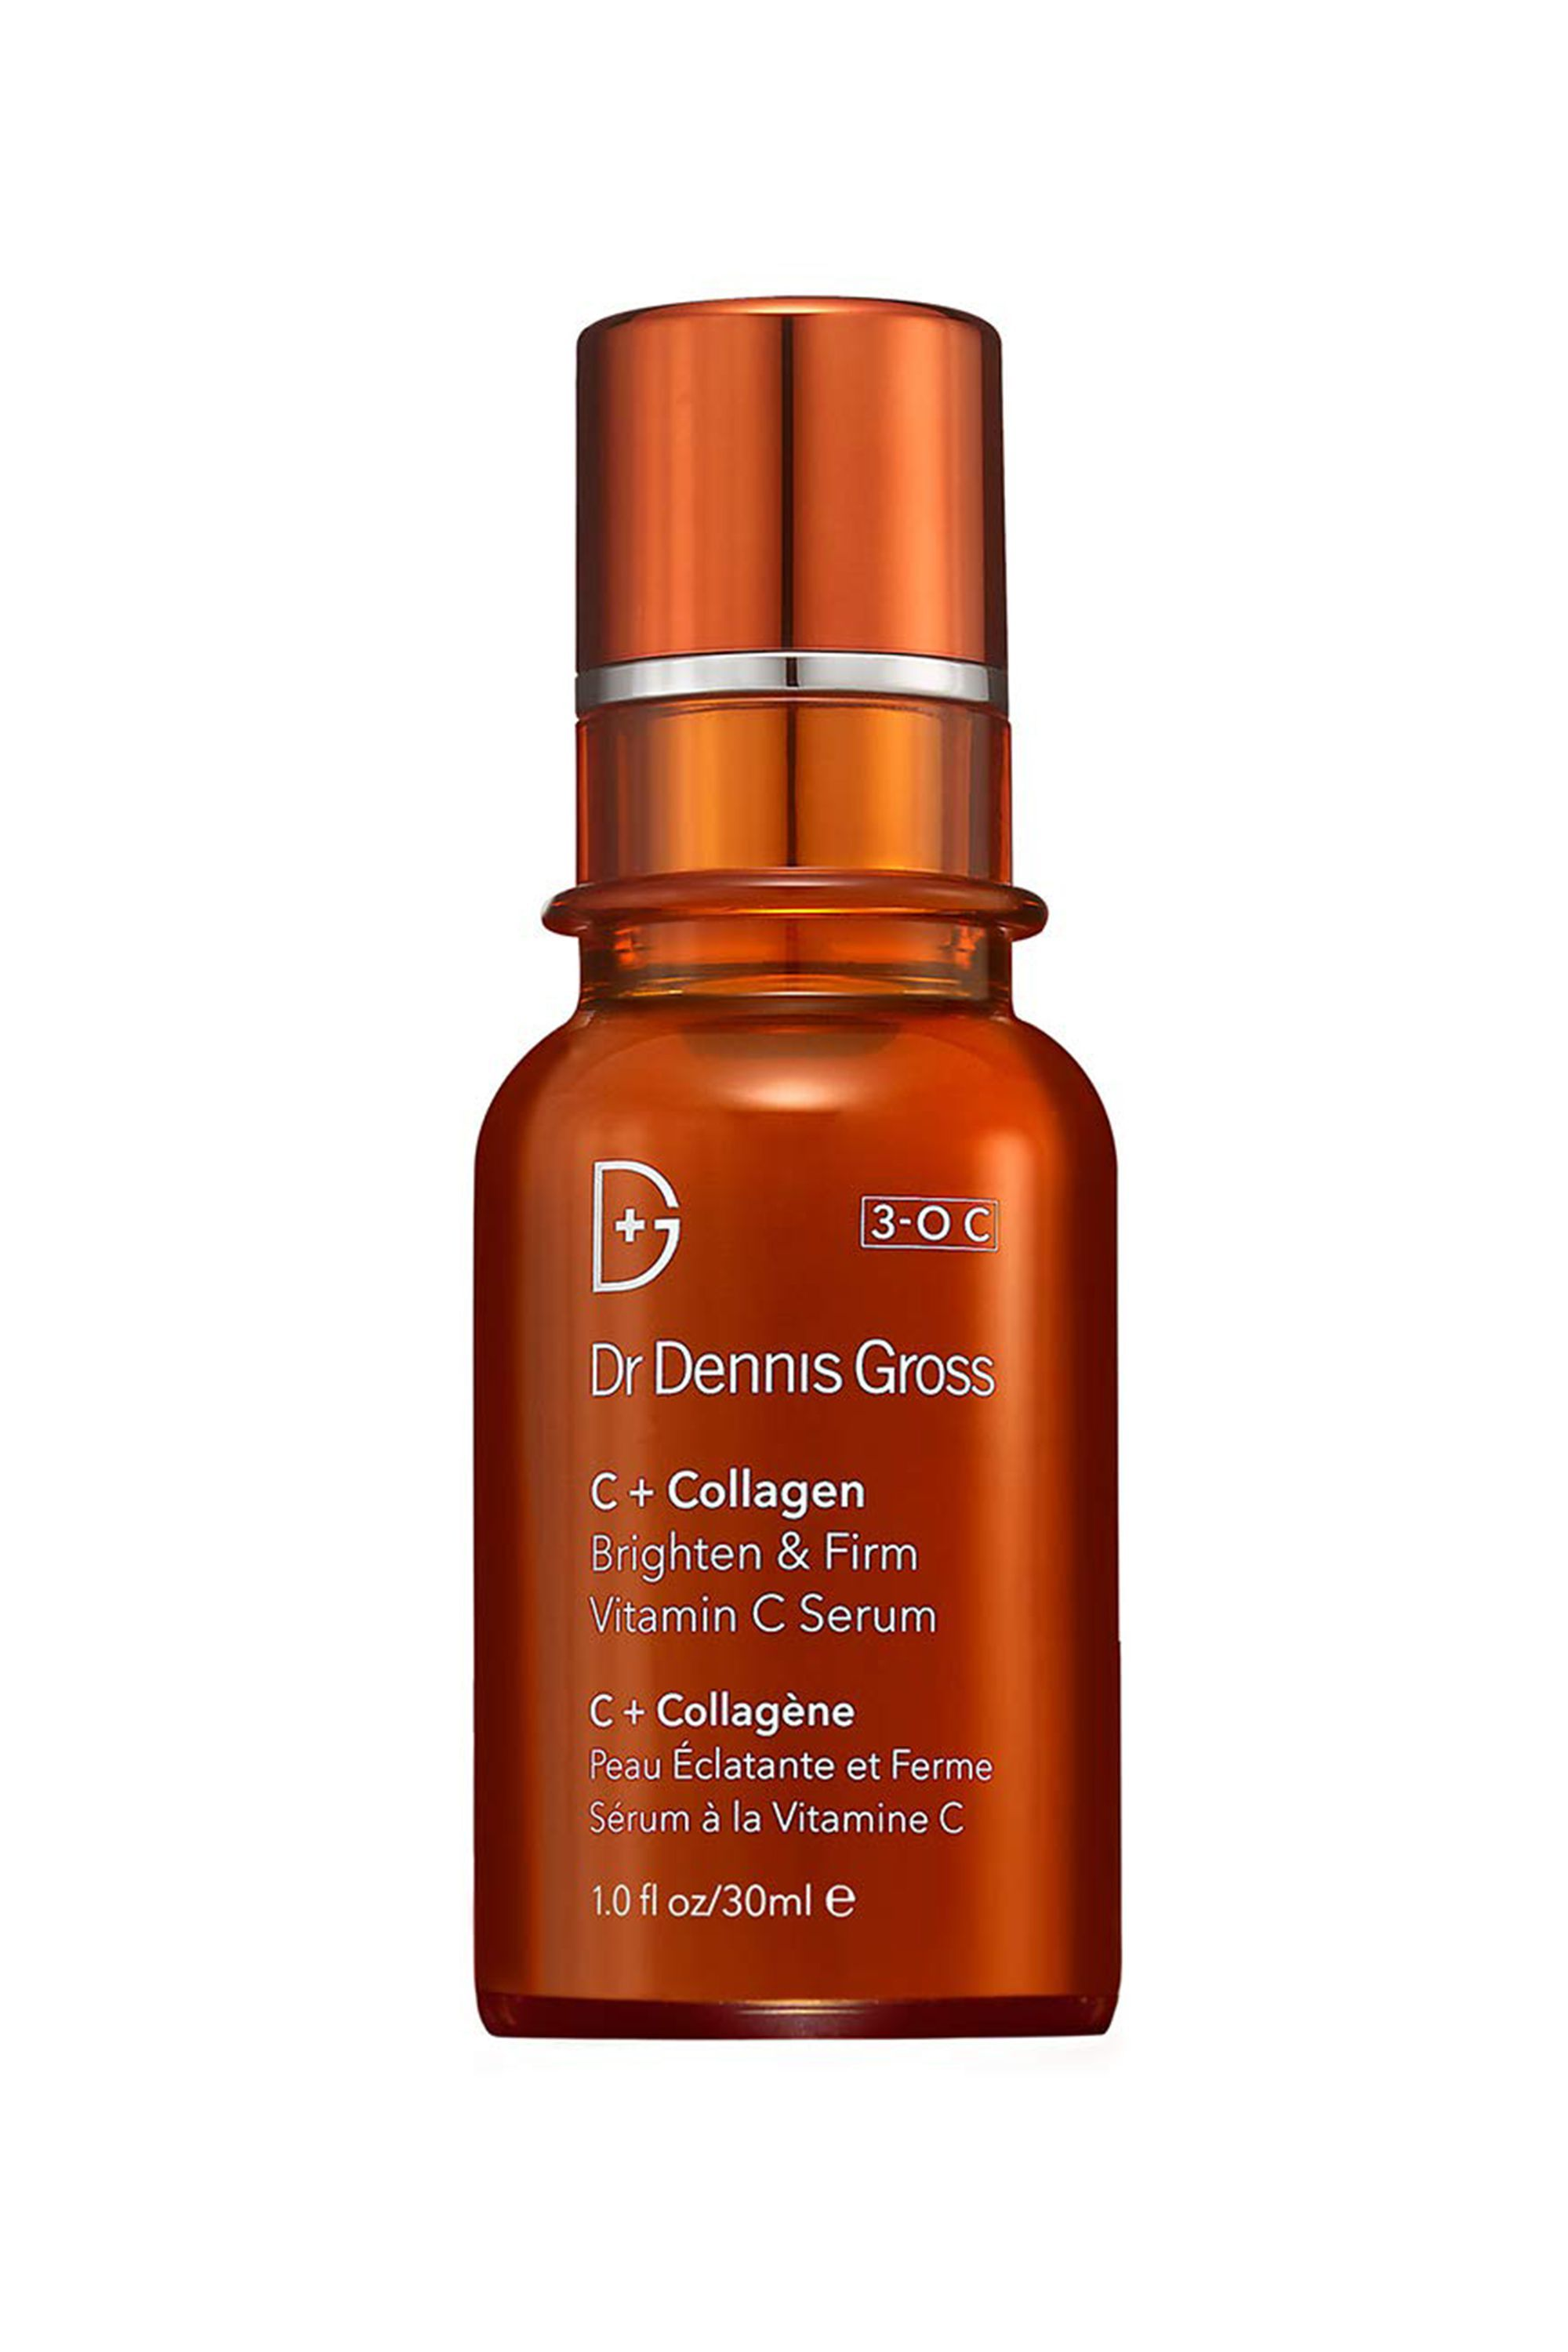 The Tighten and Brighten C+ Collagen Brighten & Firm Vitamin C Serum Dr. Dennis Gross Skincare sephora.com $78.00 SHOP NOW Brighten up dull skin by slathering your face with this illuminating gel-serum hybrid packed with potent vitamin C.